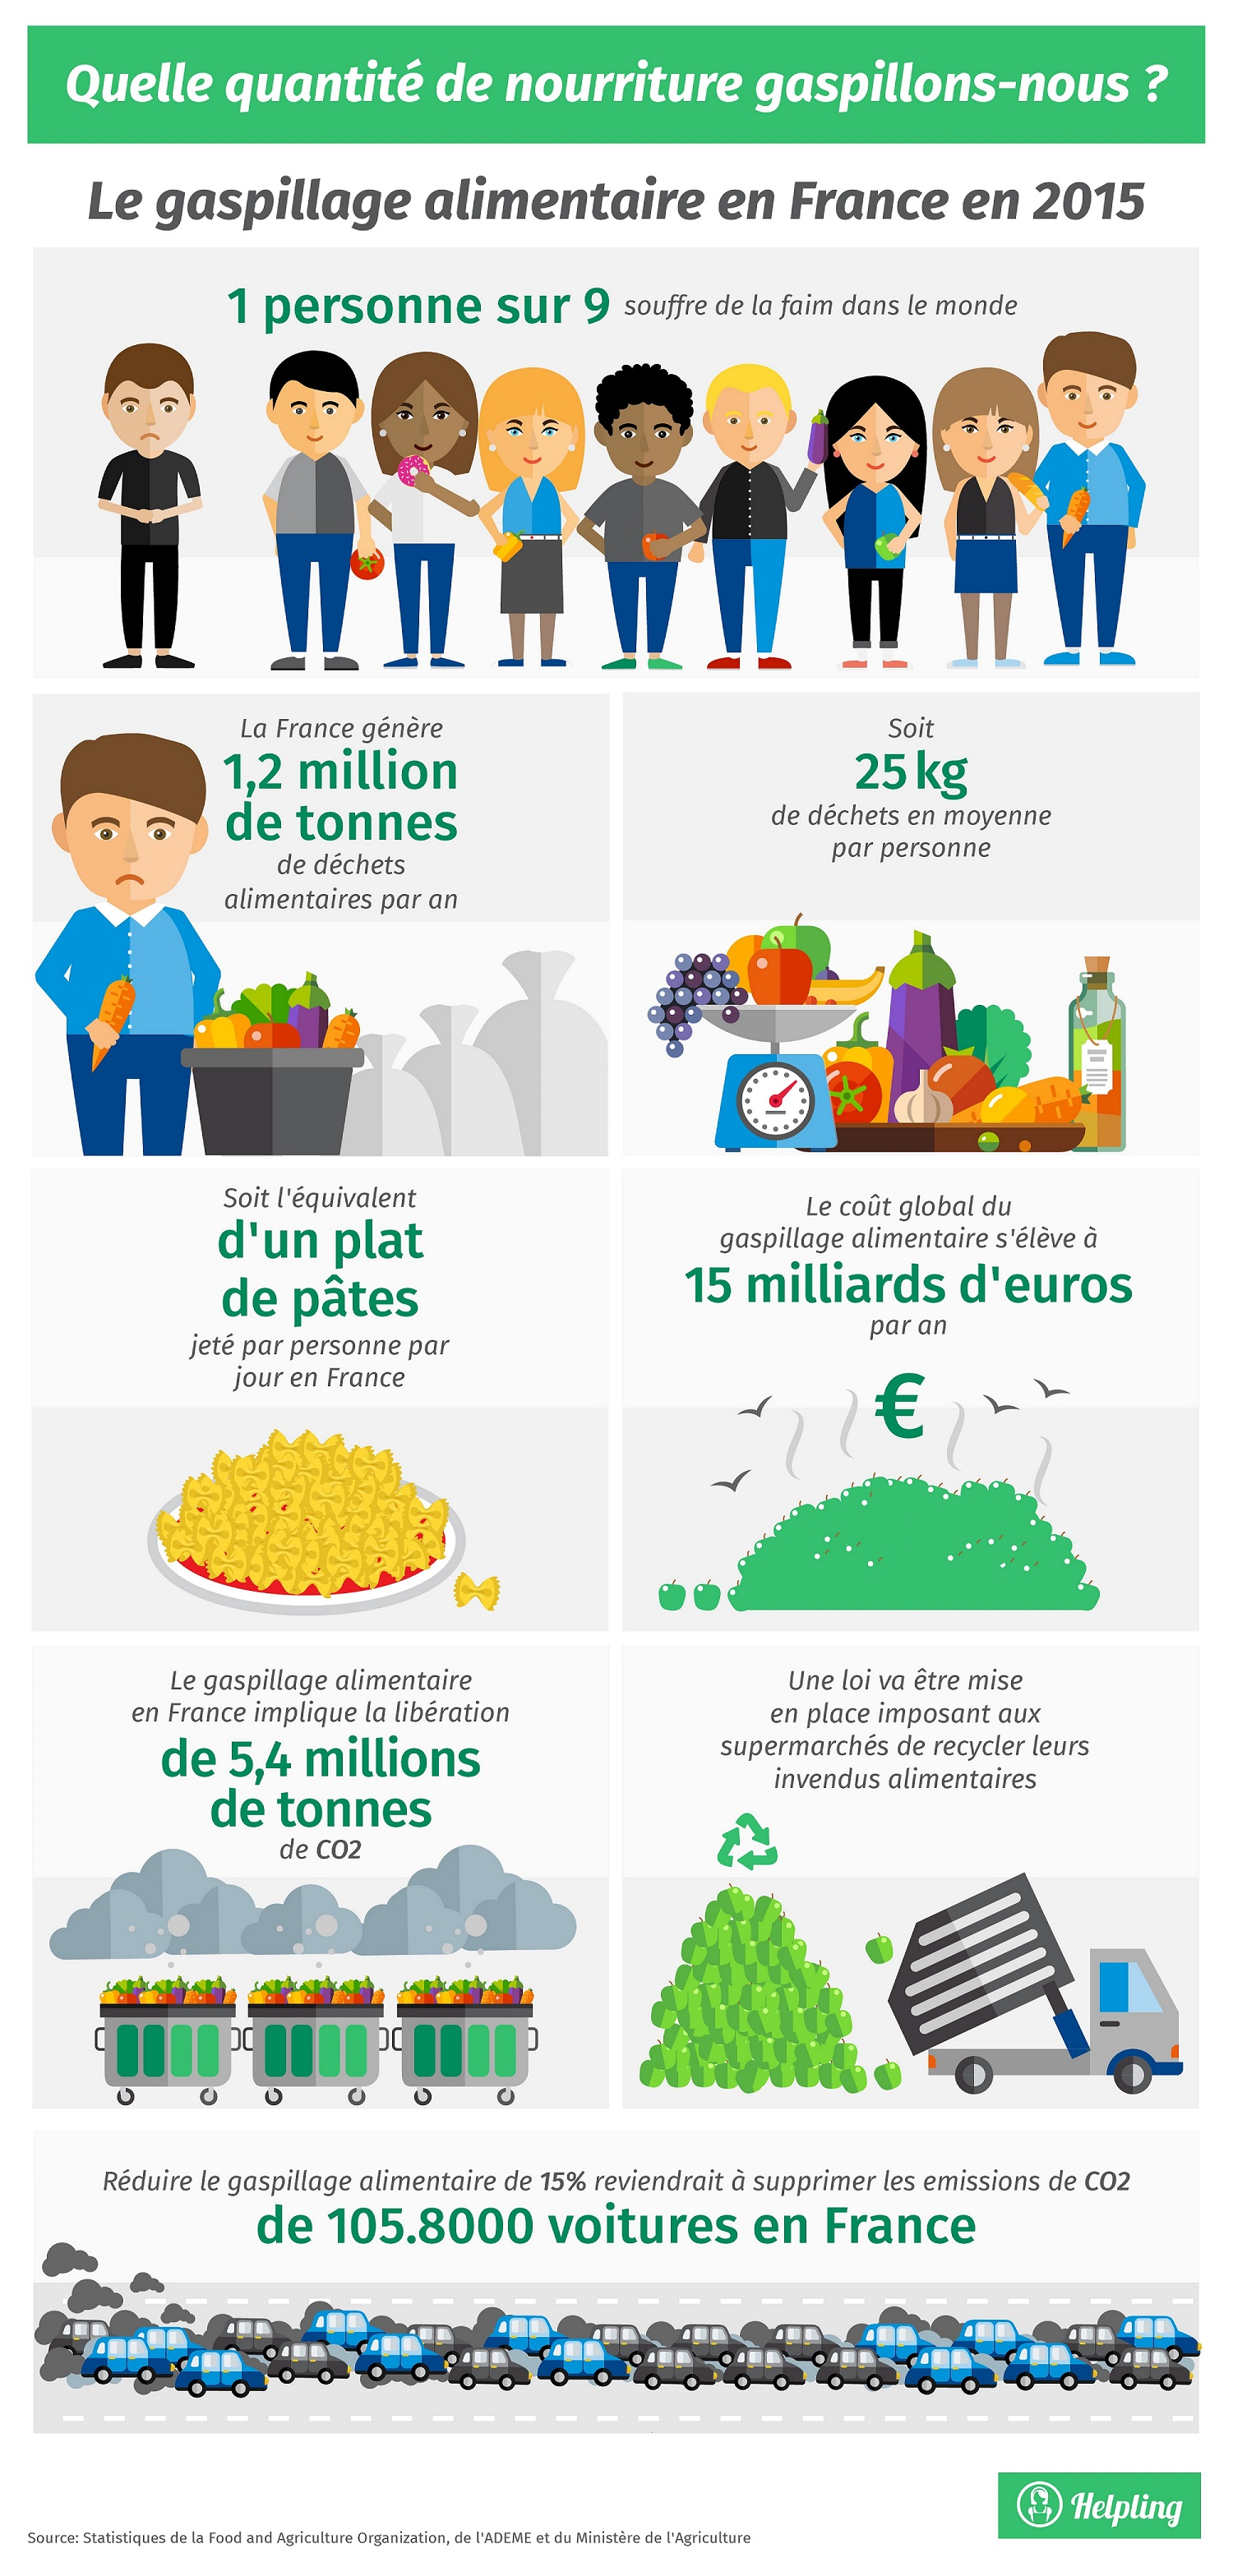 Le gaspillage alimentaire en France